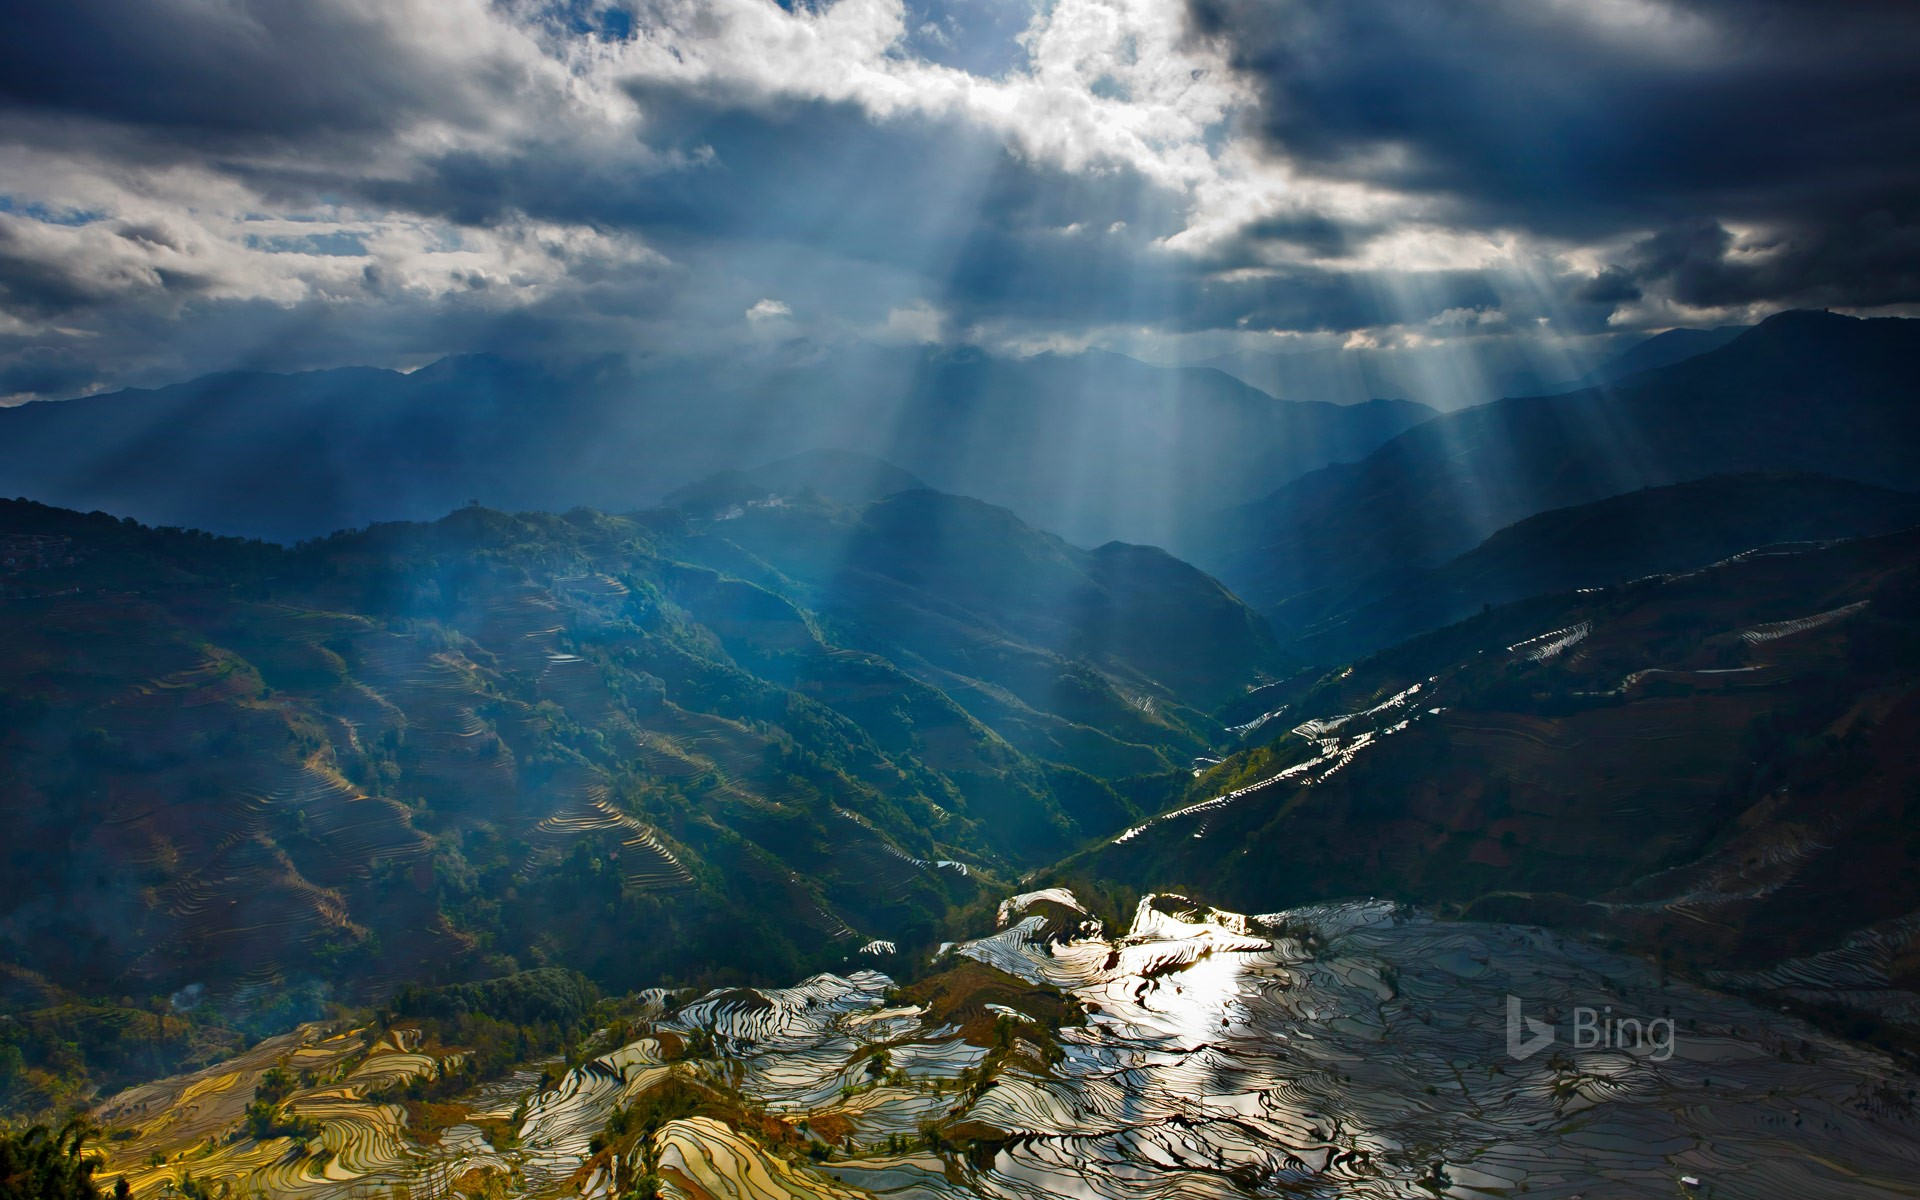 Sunlight reflecting on rice paddy terraces, Yuanyang County, China